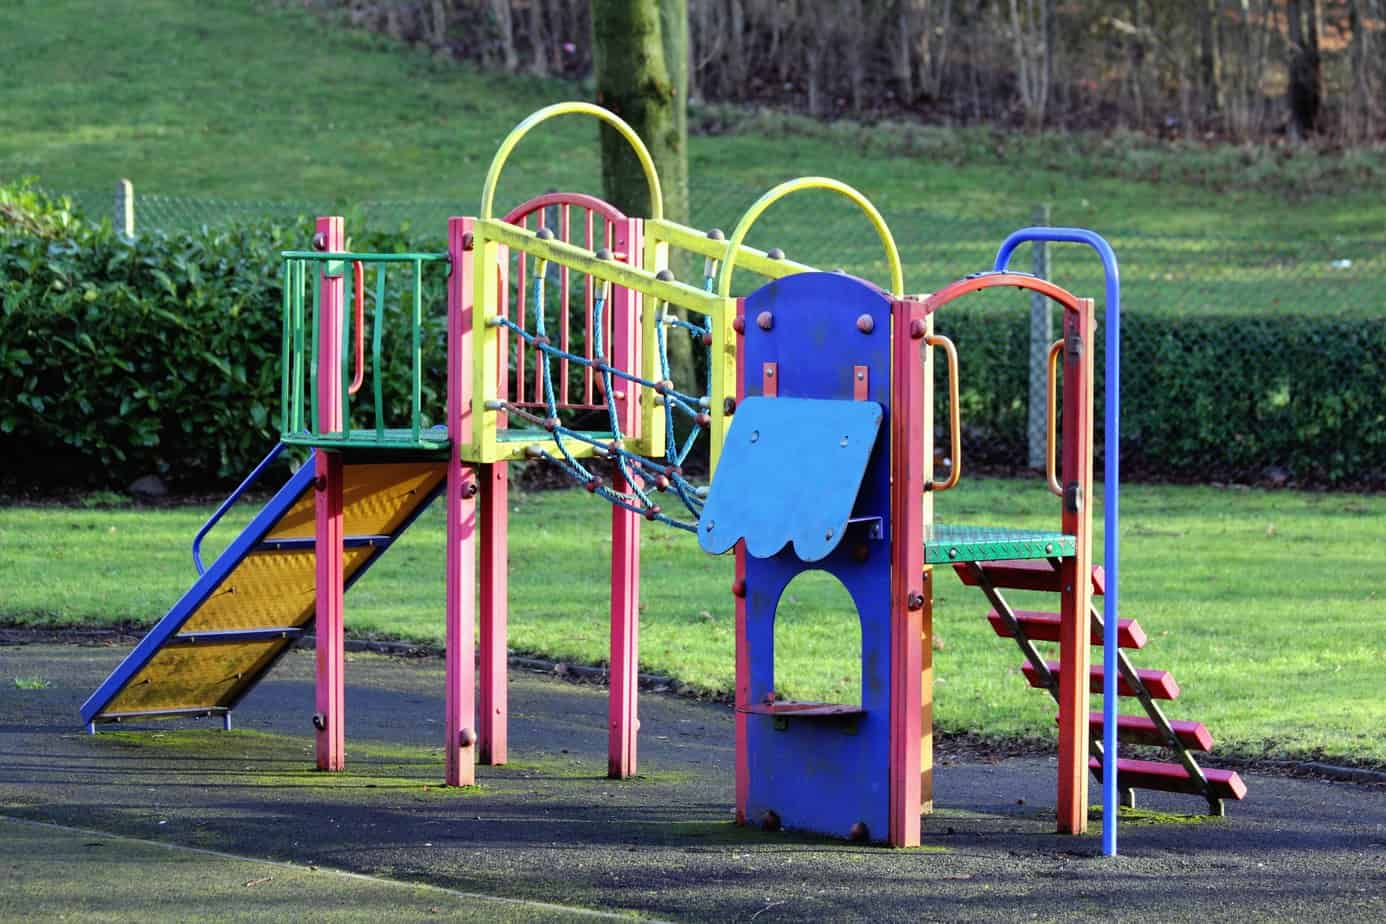 Park is a great activity to develop gross motor skills in children